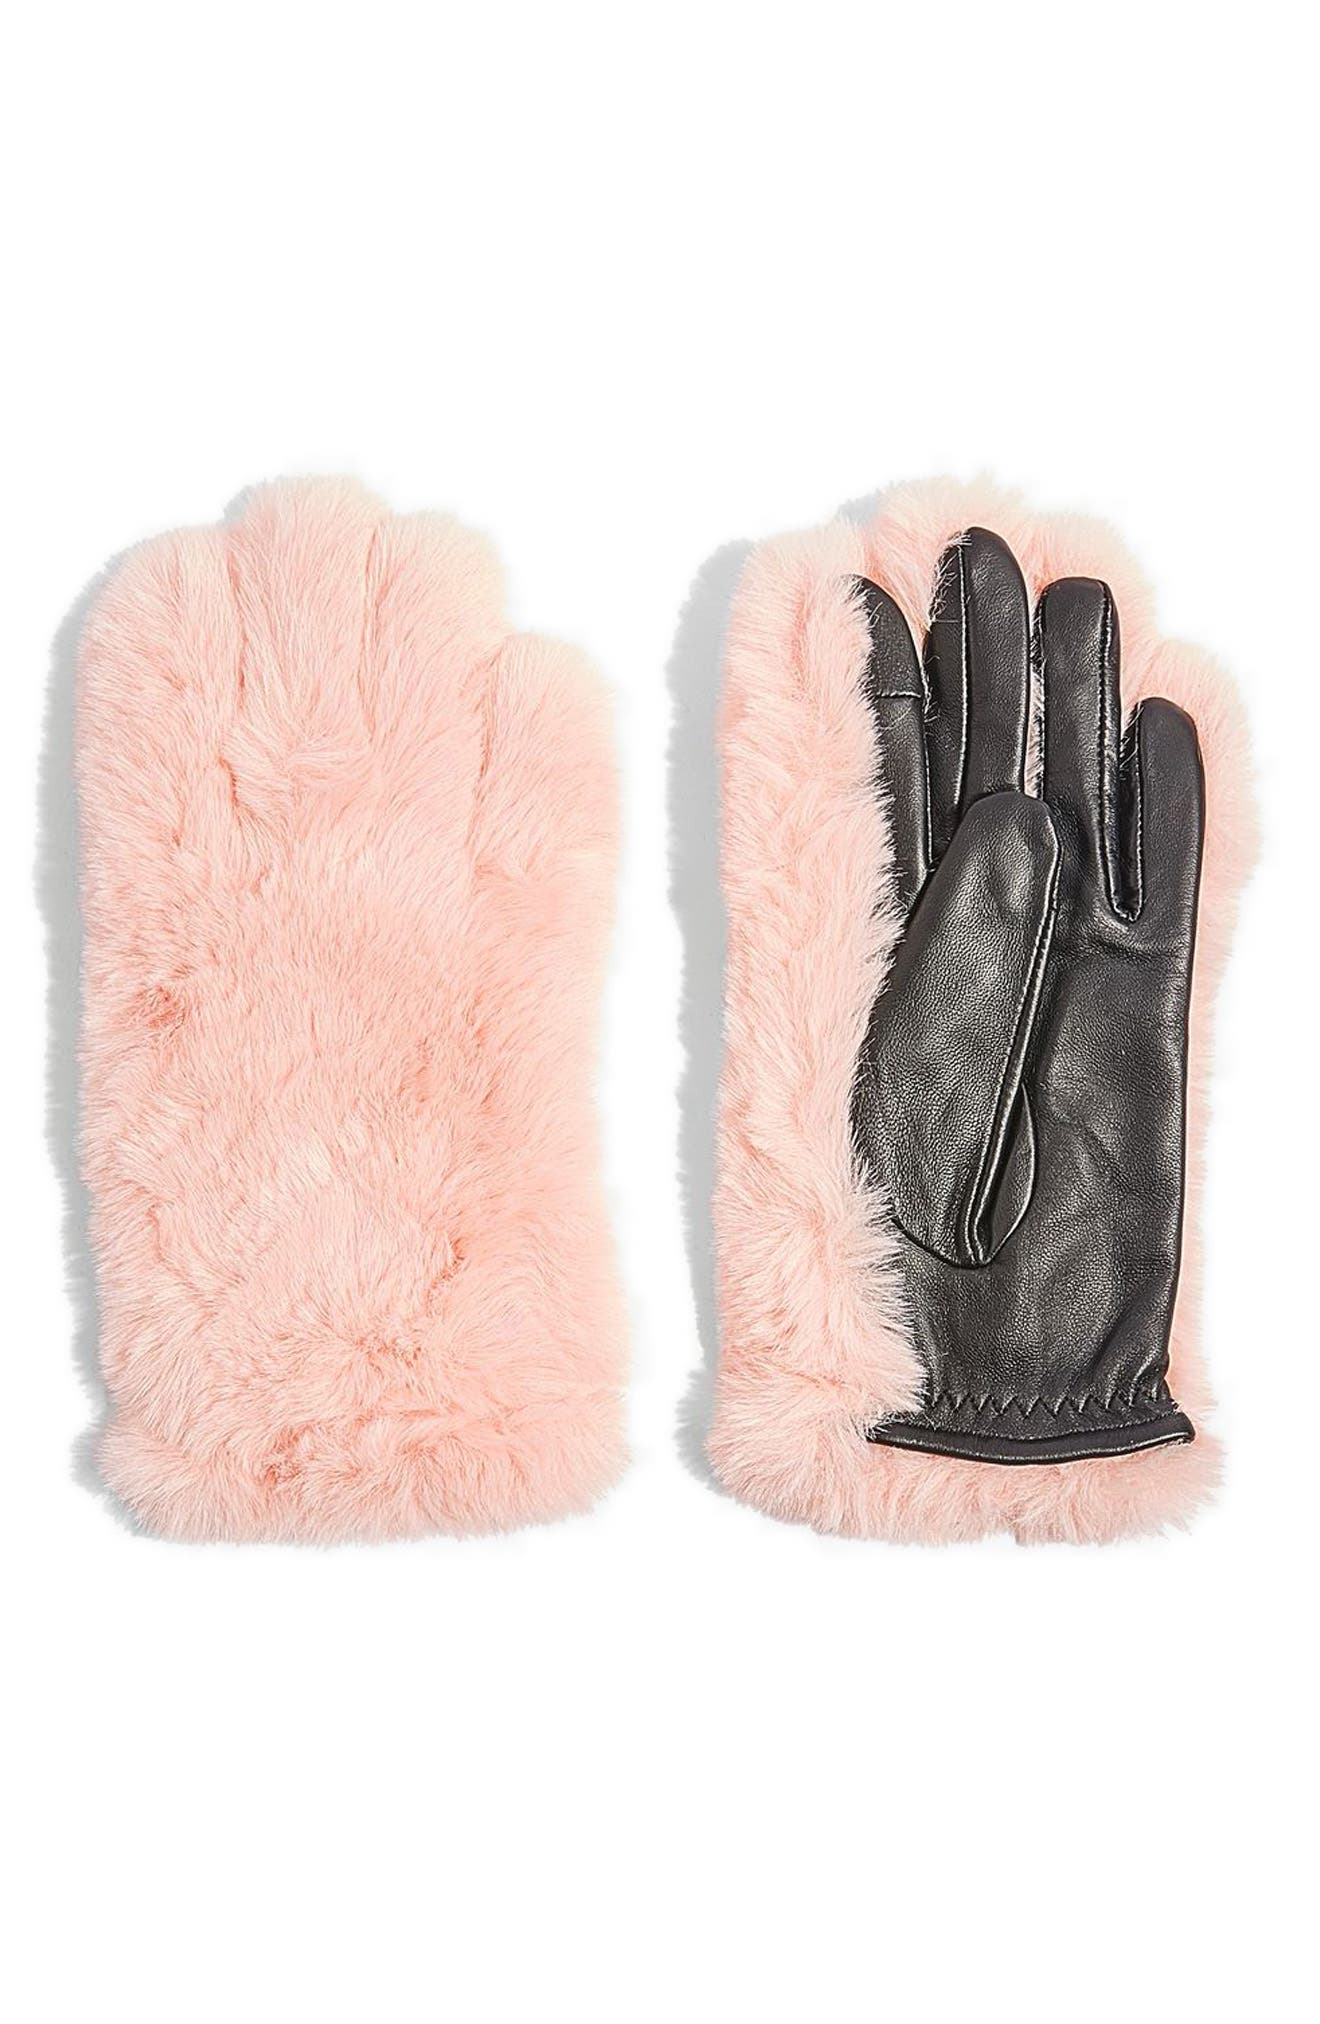 Topshop Faux Fur & Leather Gloves